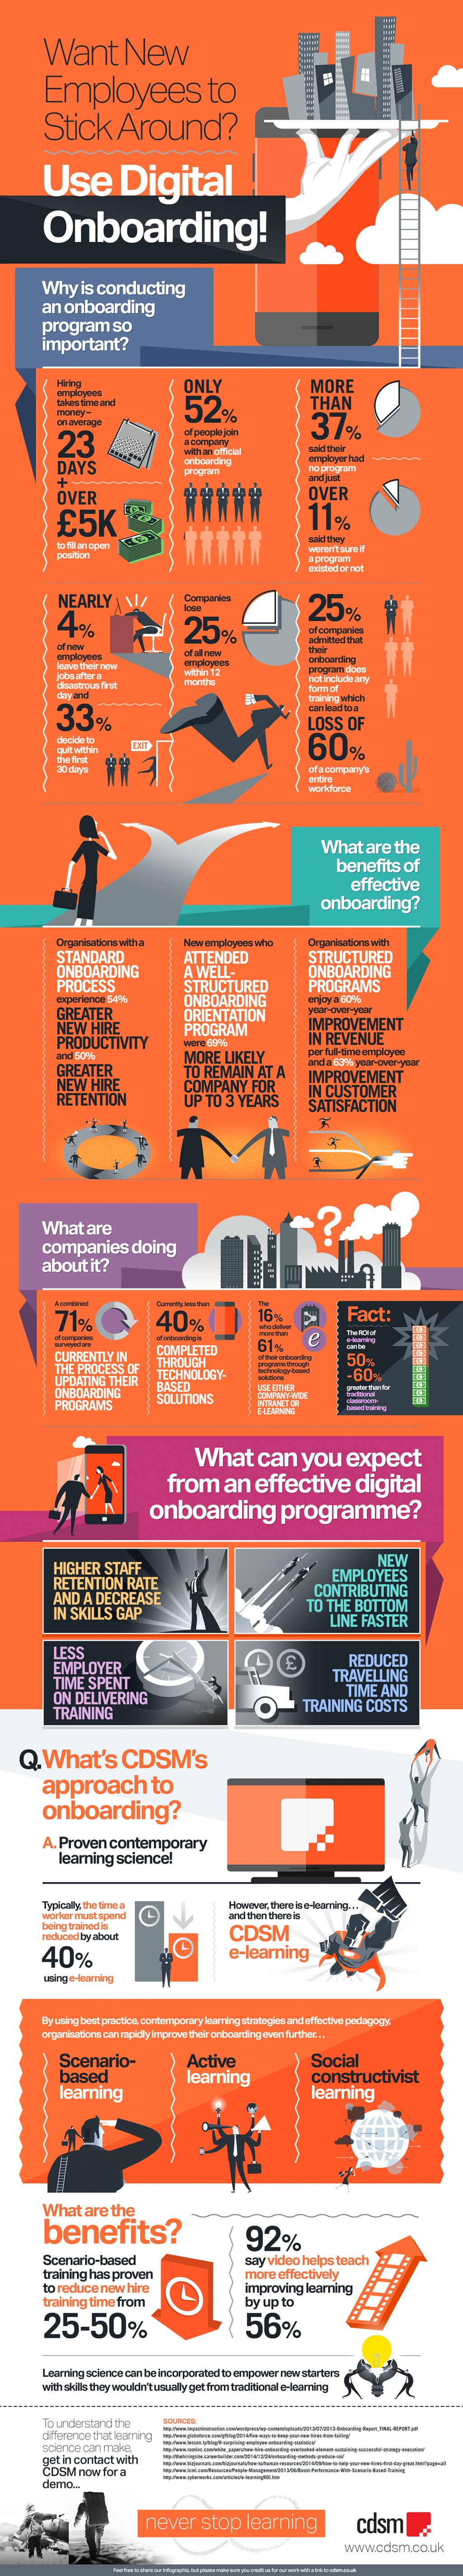 Use Digital Onboarding to Make New Employees Stick Around Infographic